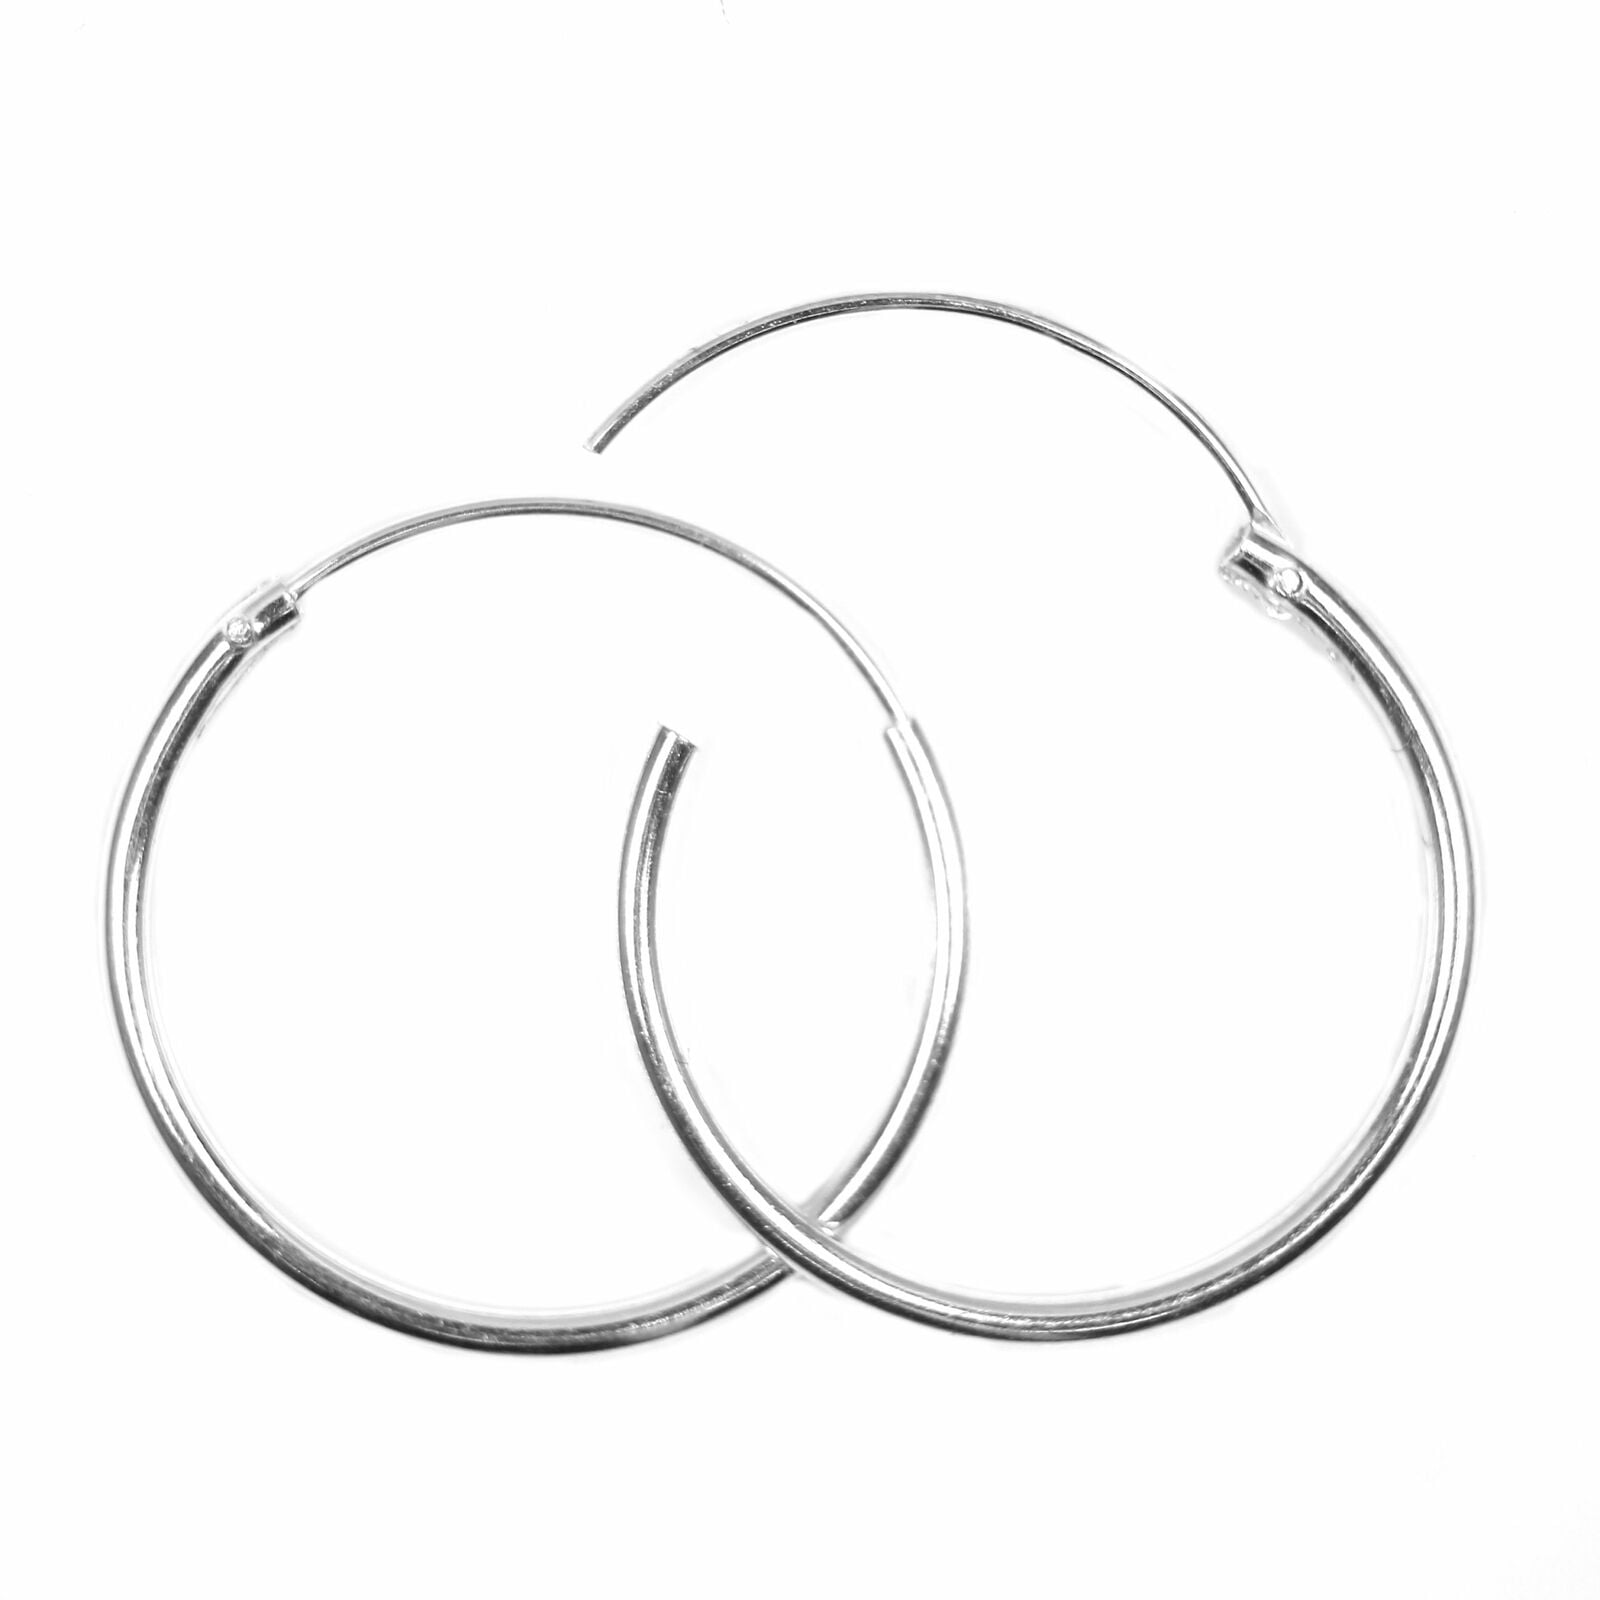 Sterling silver hoop earrings 20mm across with hinge